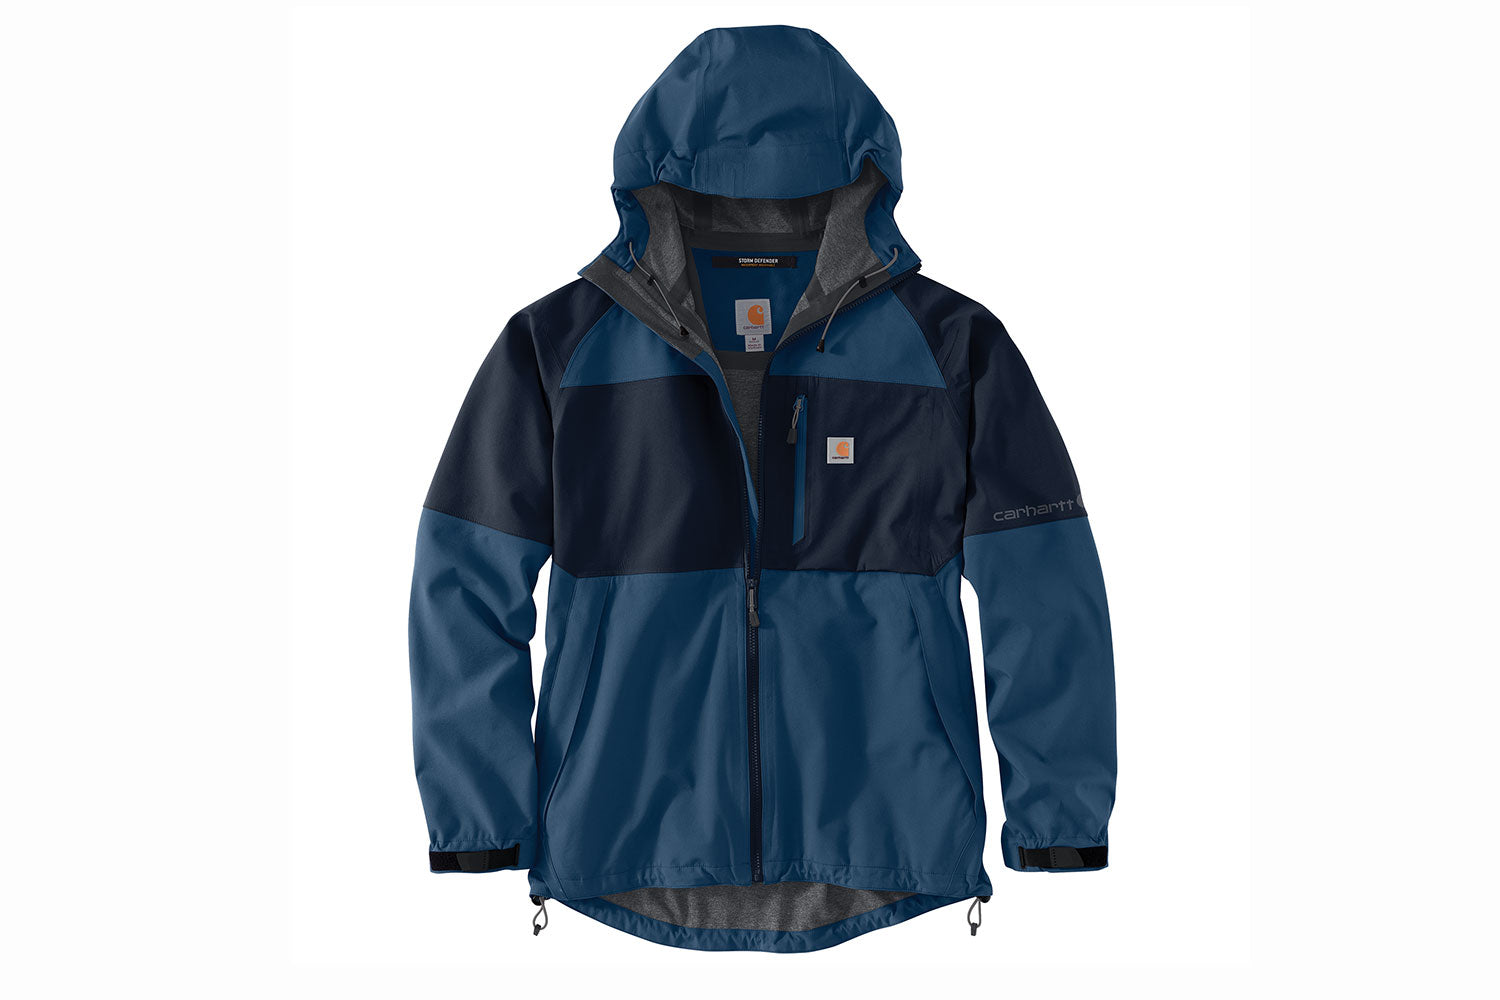 'Carhartt' Men's Storm Defender®Midweight Hooded Jacket - Dark Blue / Navy